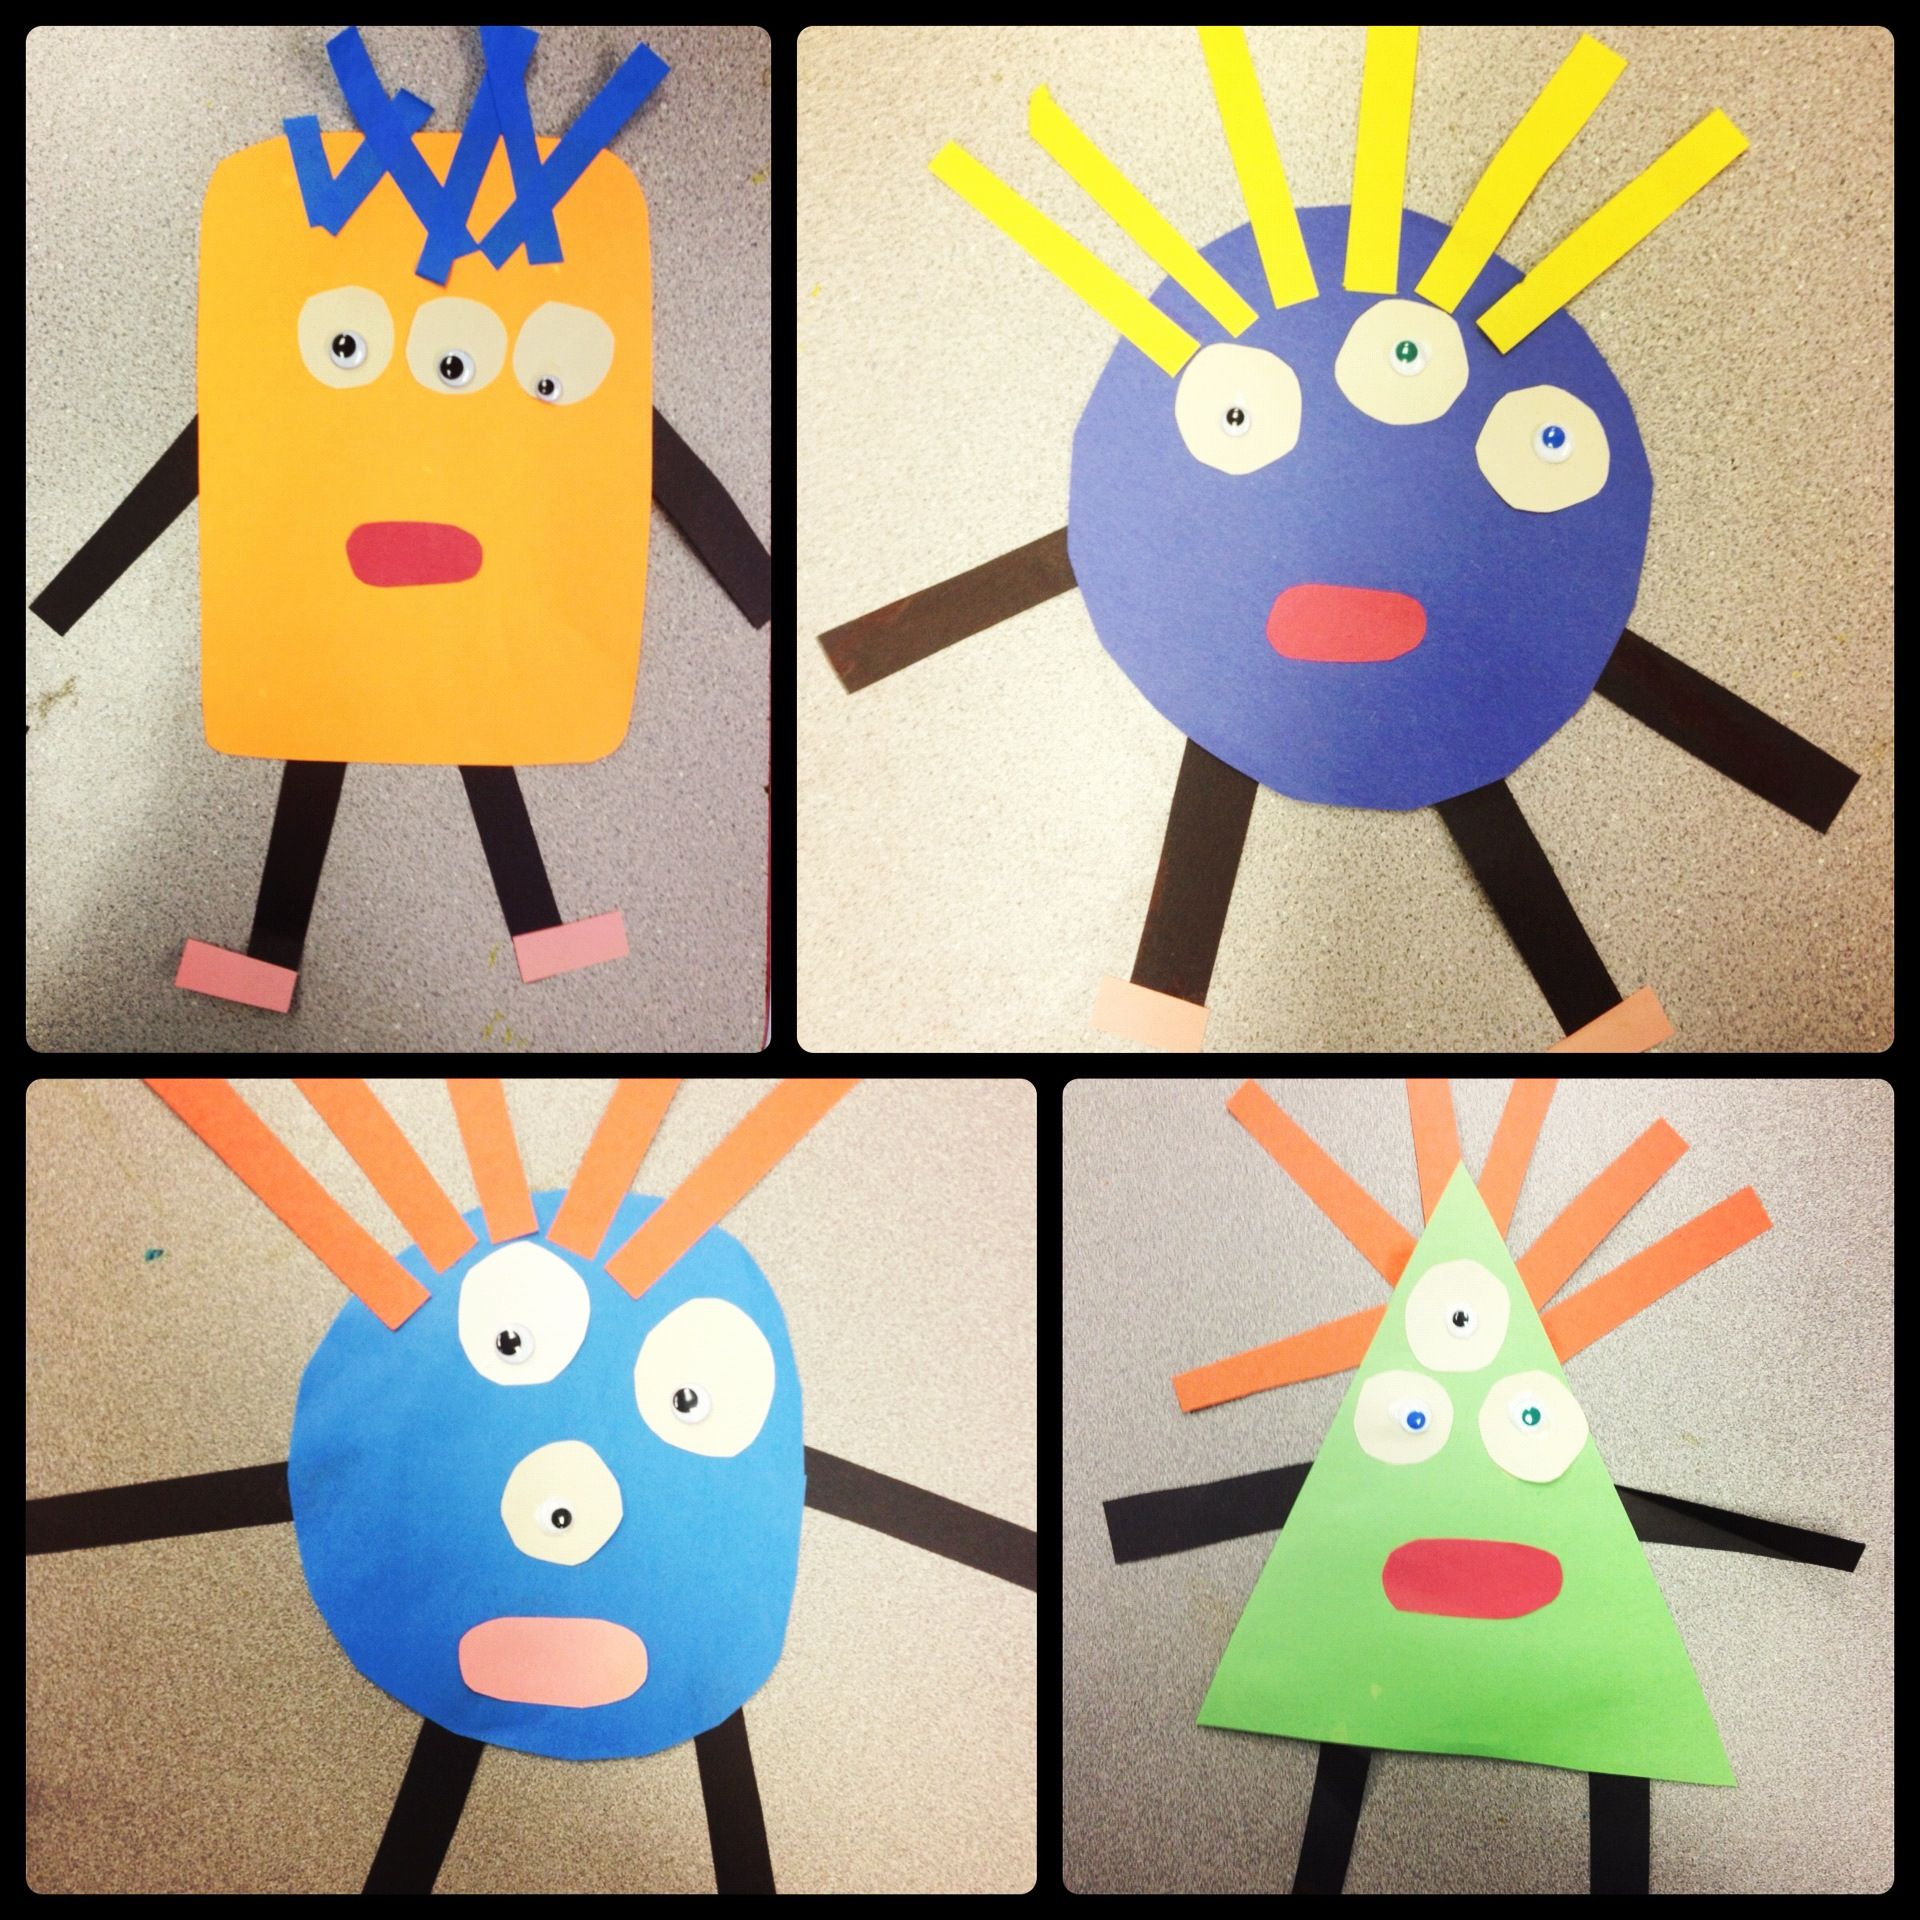 Pre k arts and crafts - Geometric Monsters Art Lesson Special Education Pre School Kindergarten Interactive Lesson